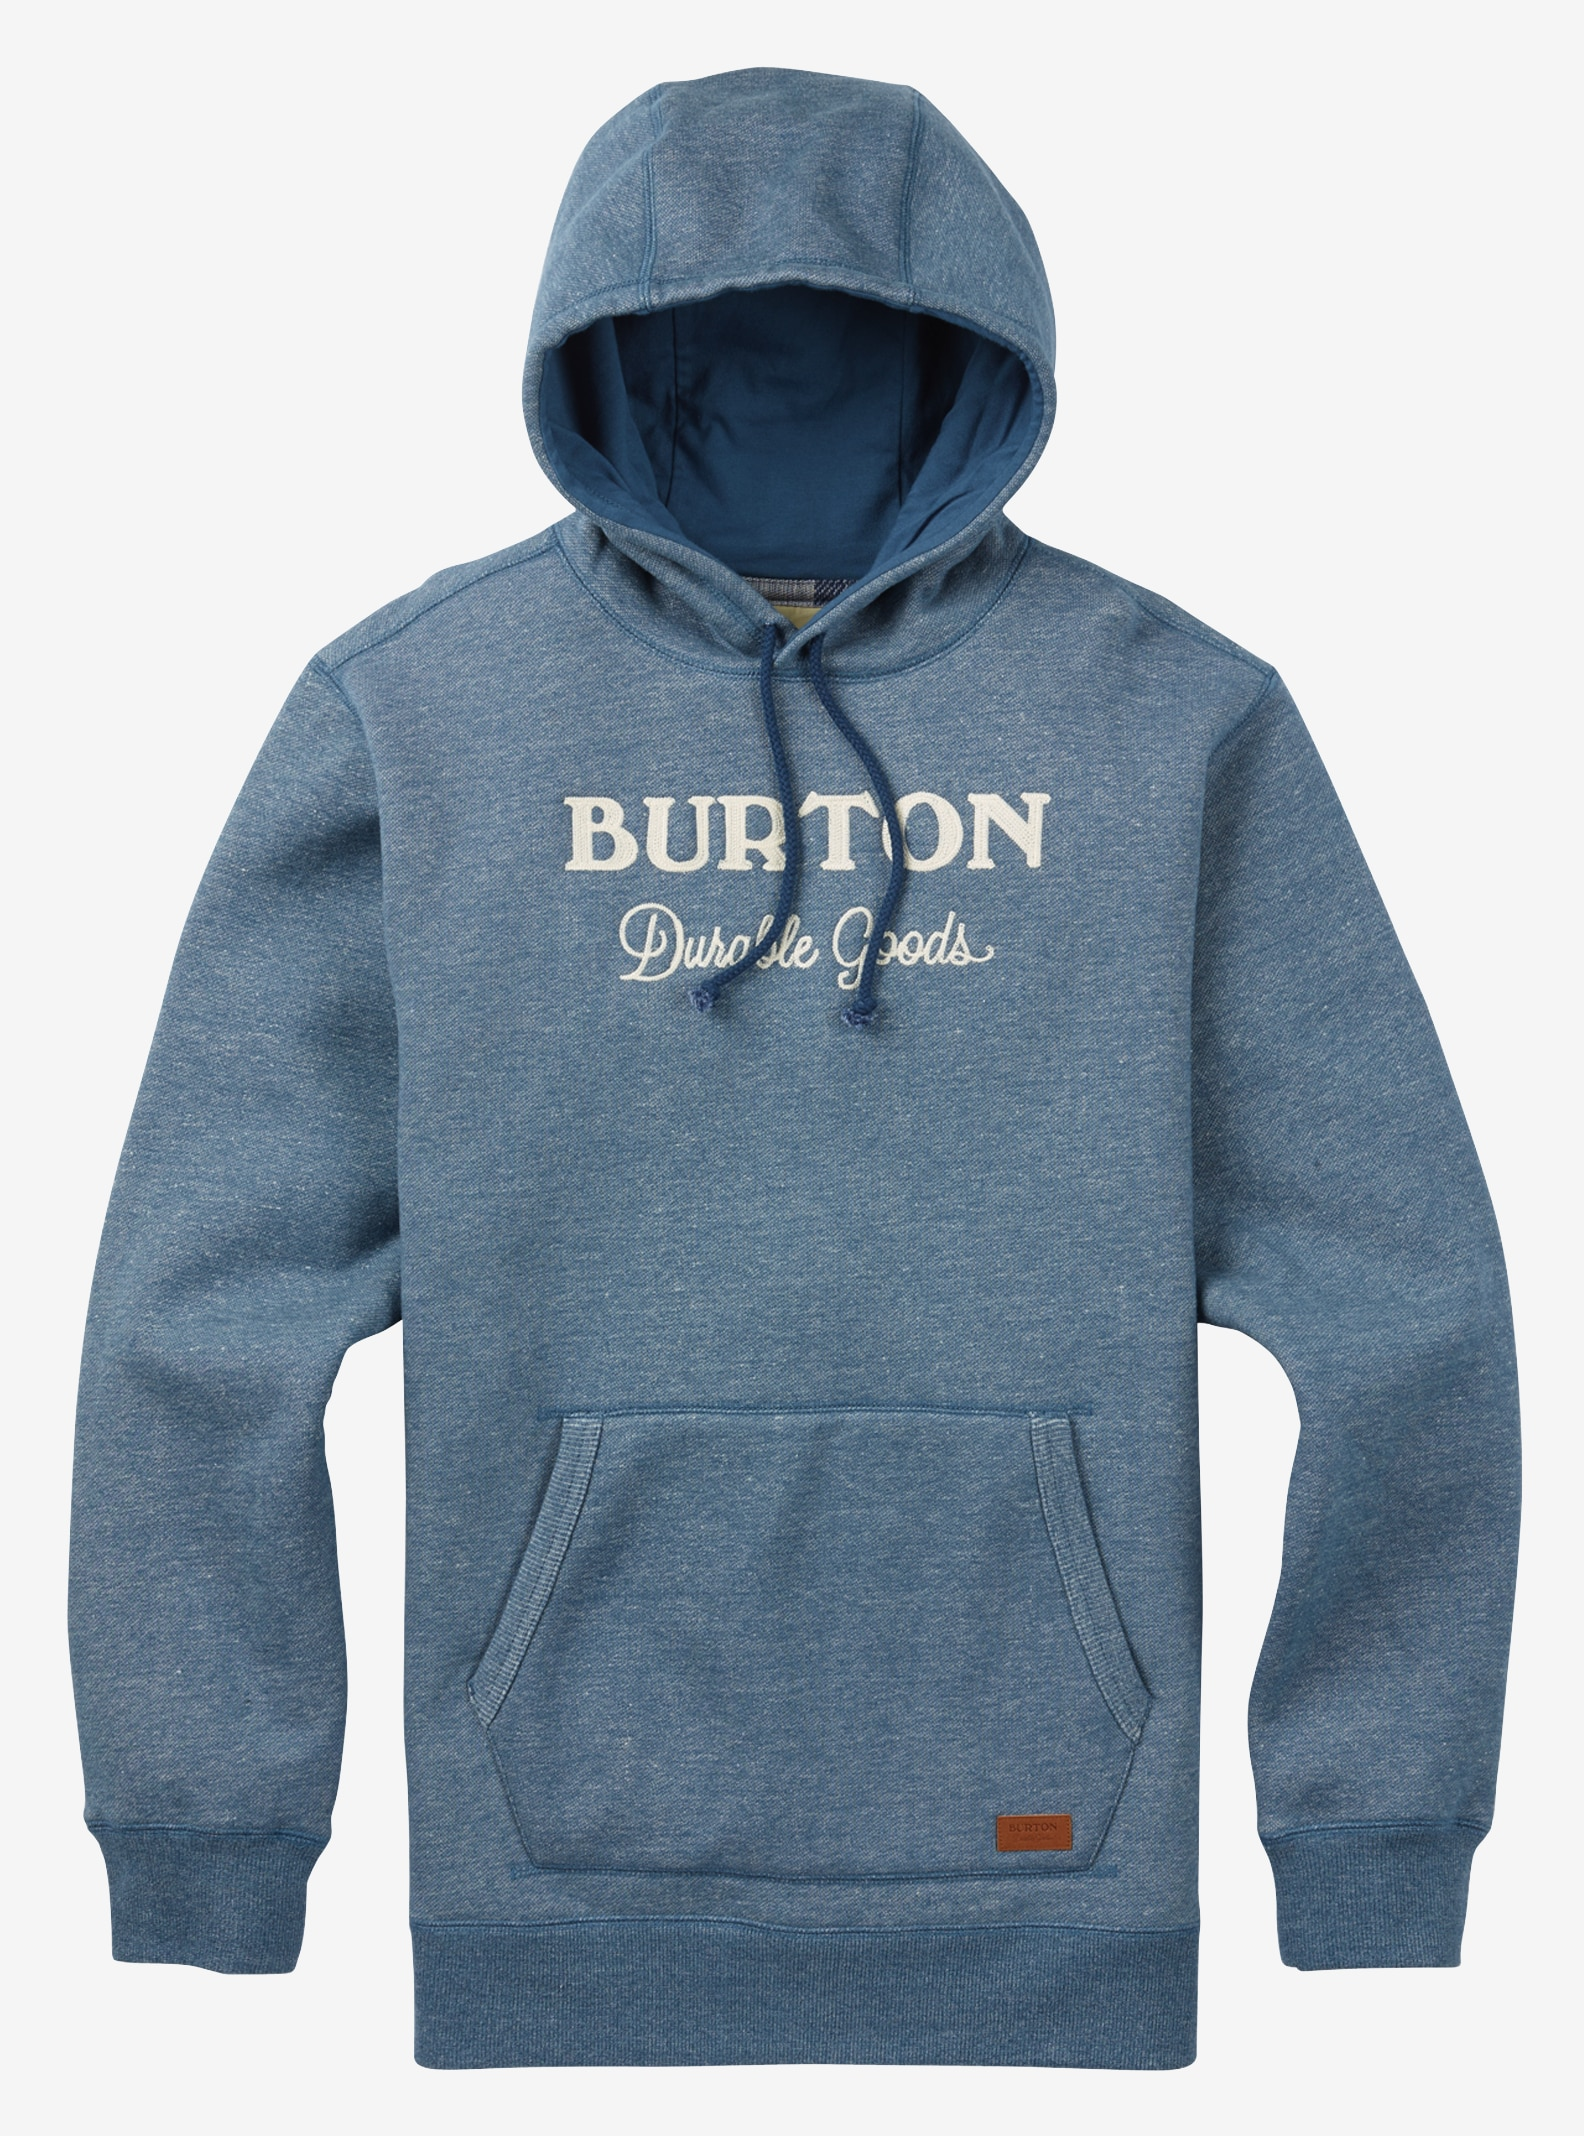 Men's Burton Maynard Pullover Hoodie shown in Indigo Heather